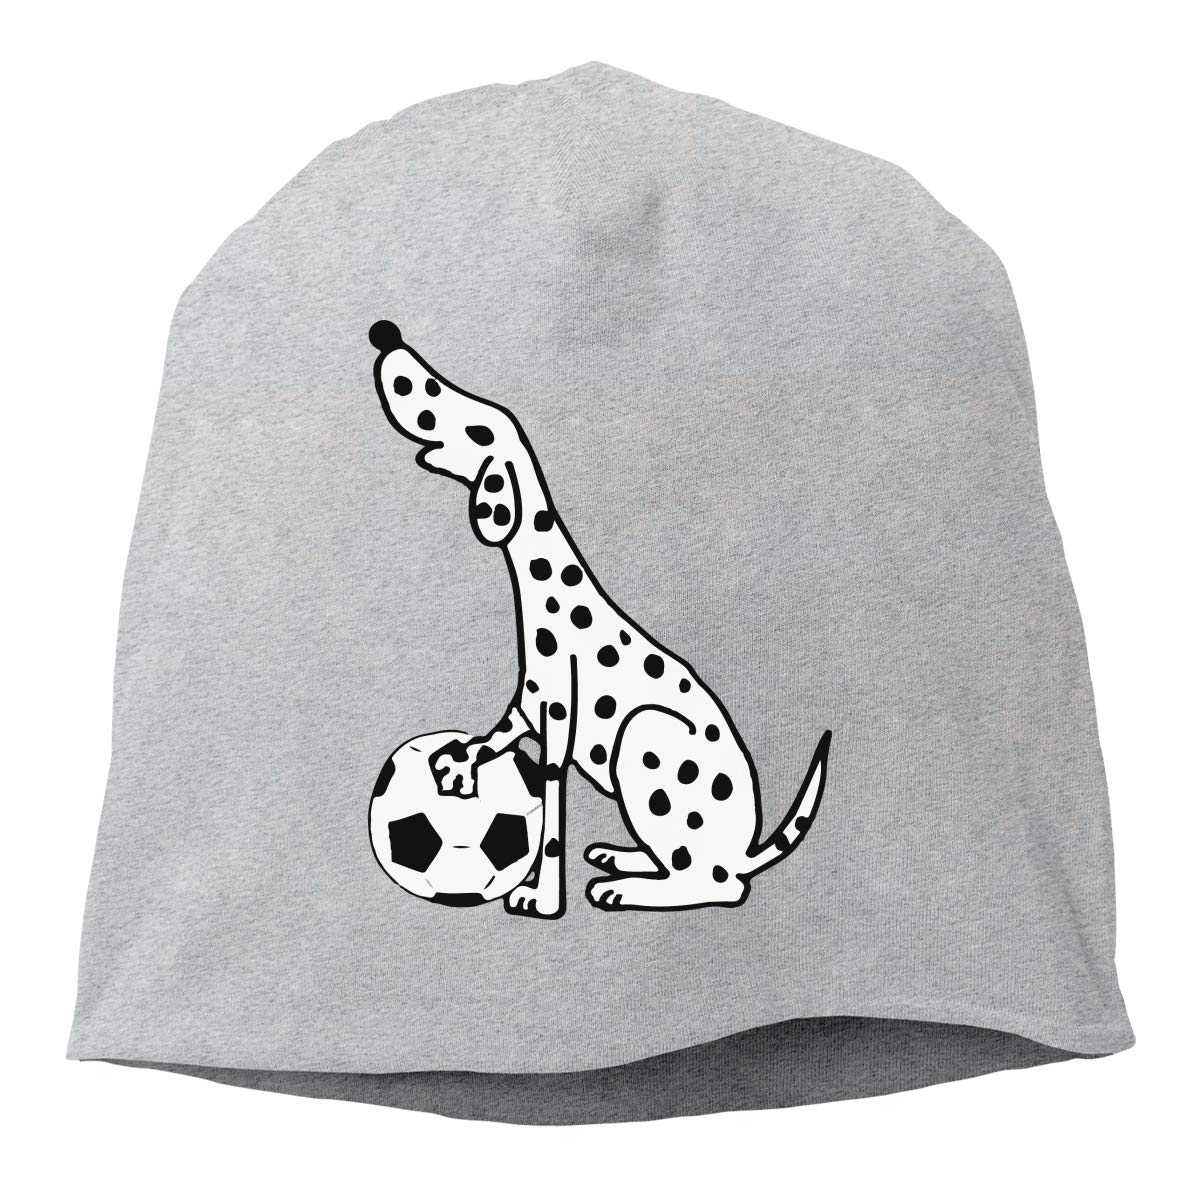 TLPM9LKMBM Dalmatian Dog Playing Soccer Beanie Skull Cap for Women and Men Winter Warm Daily Hat